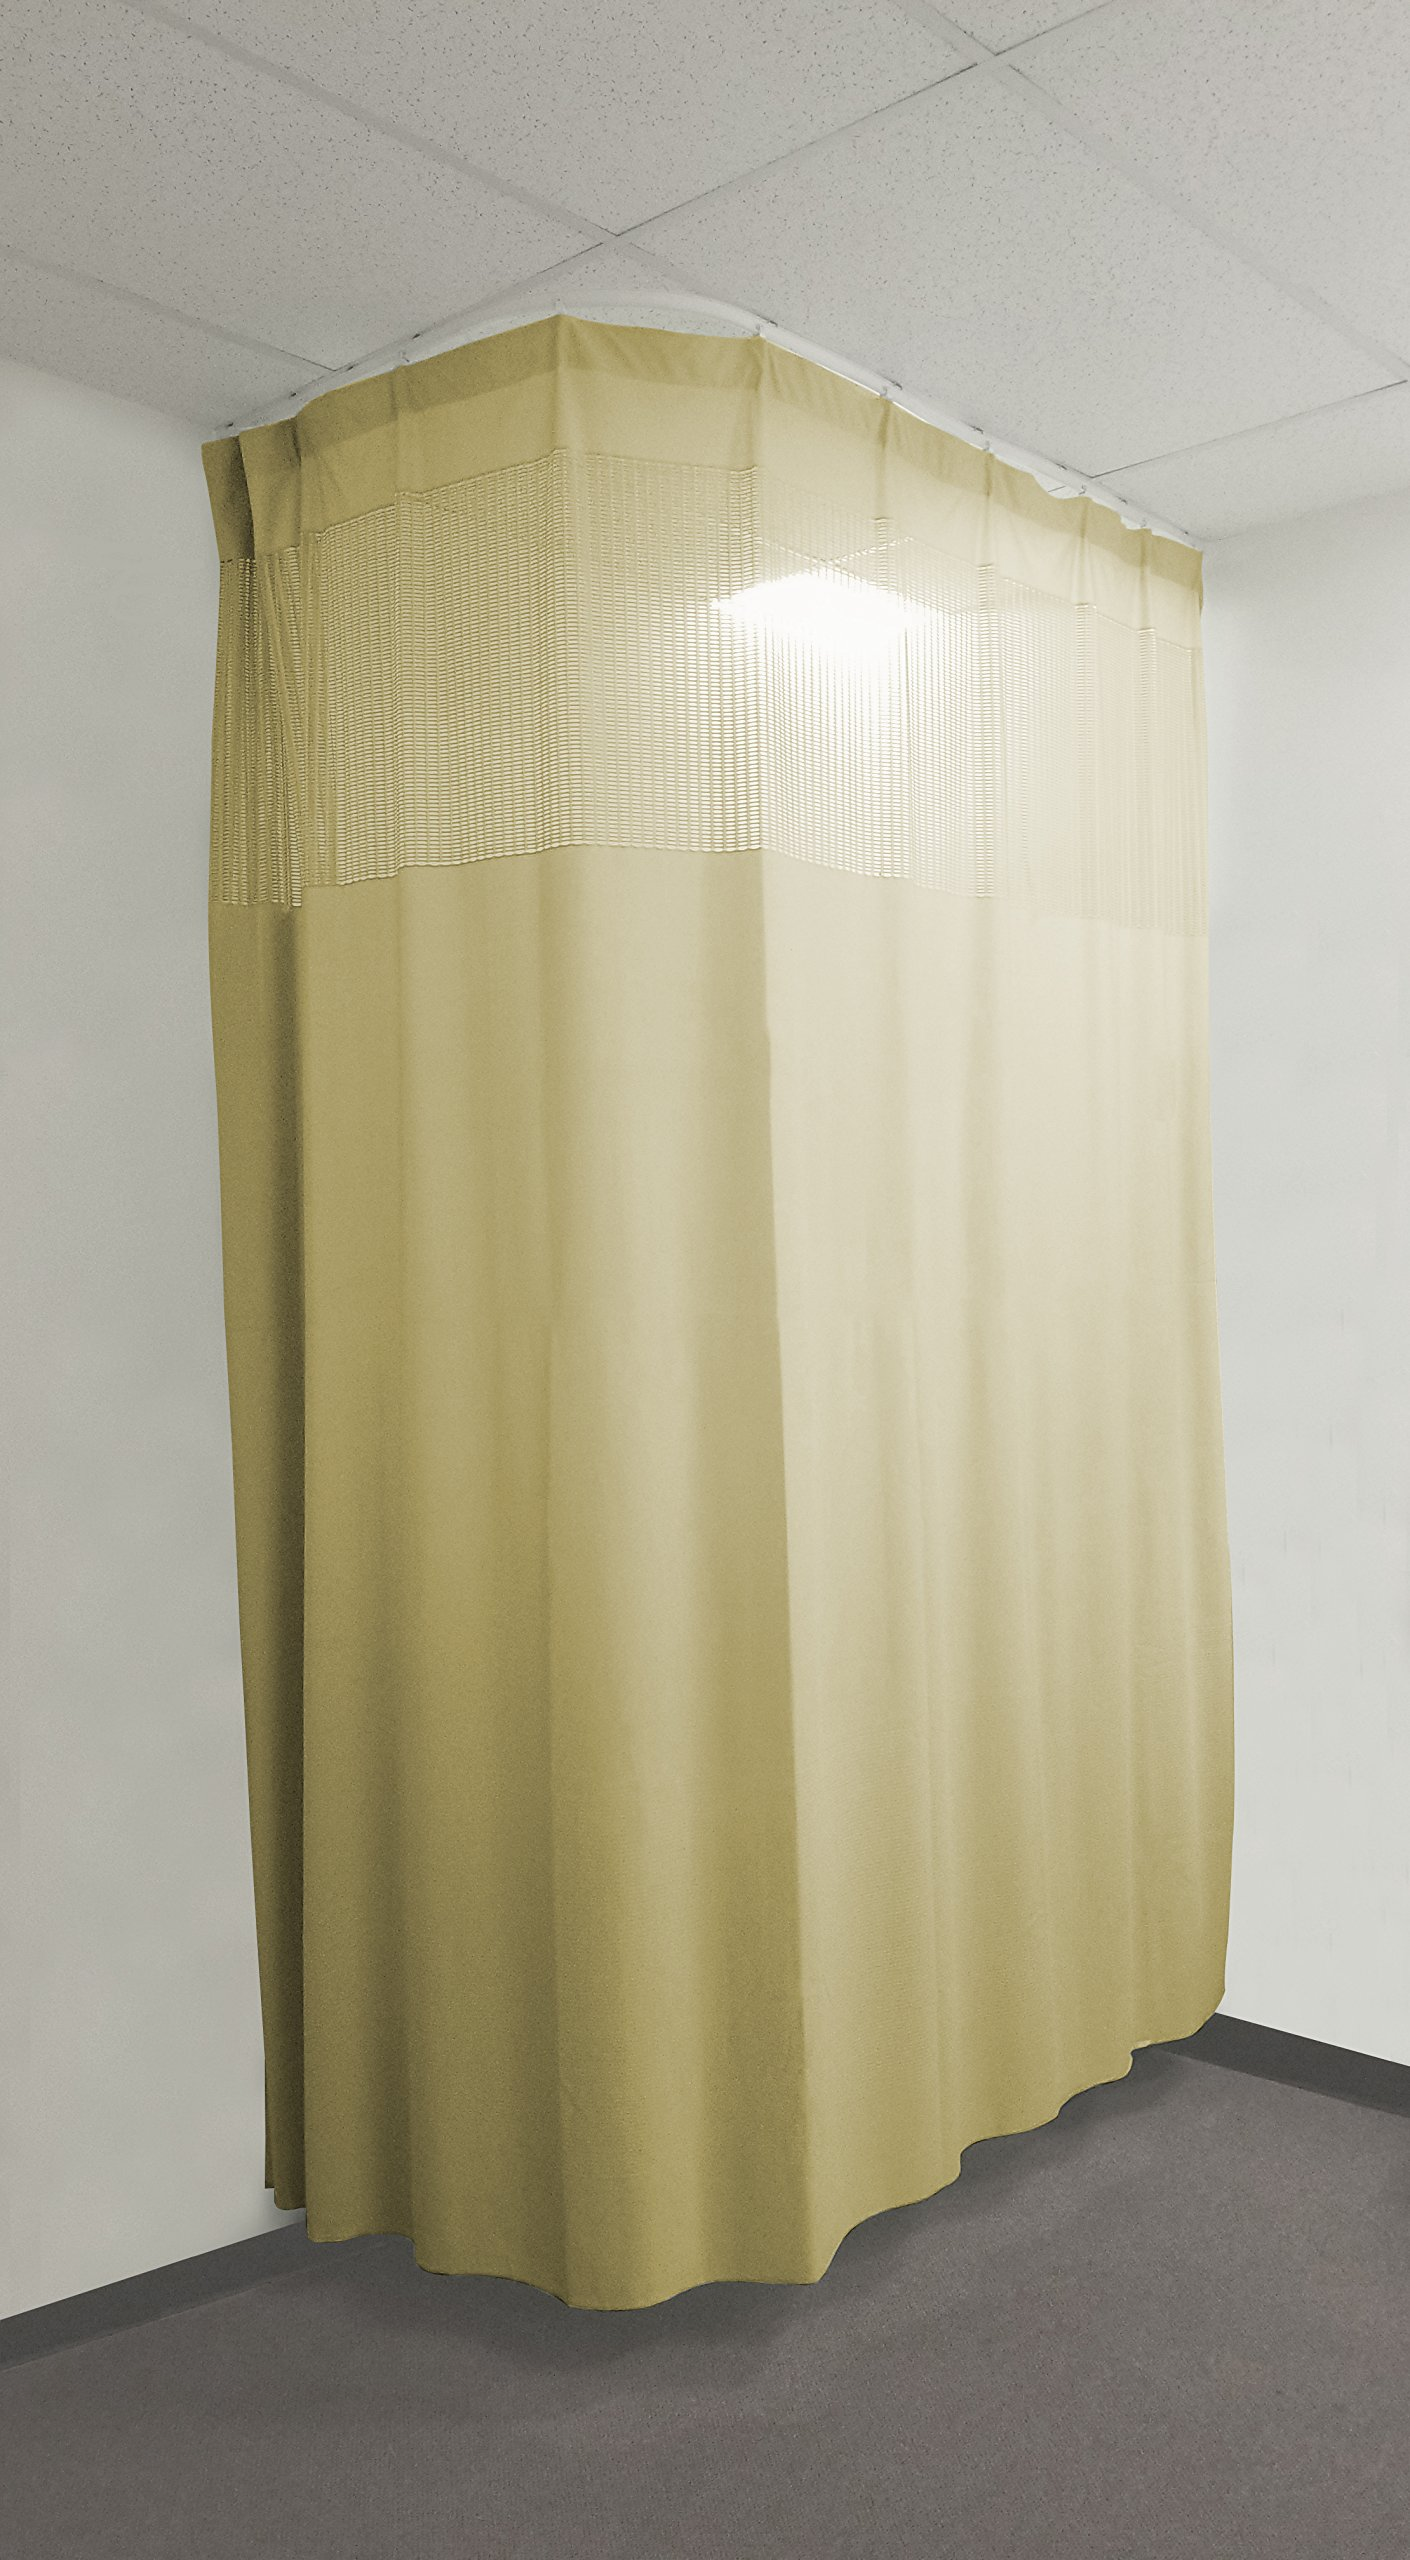 10Ft Medical Privacy Flexible Curtains High Ceiling Hospital Lab Clinic Curved Room Decorative w/ Track- 10ft High (Beige)